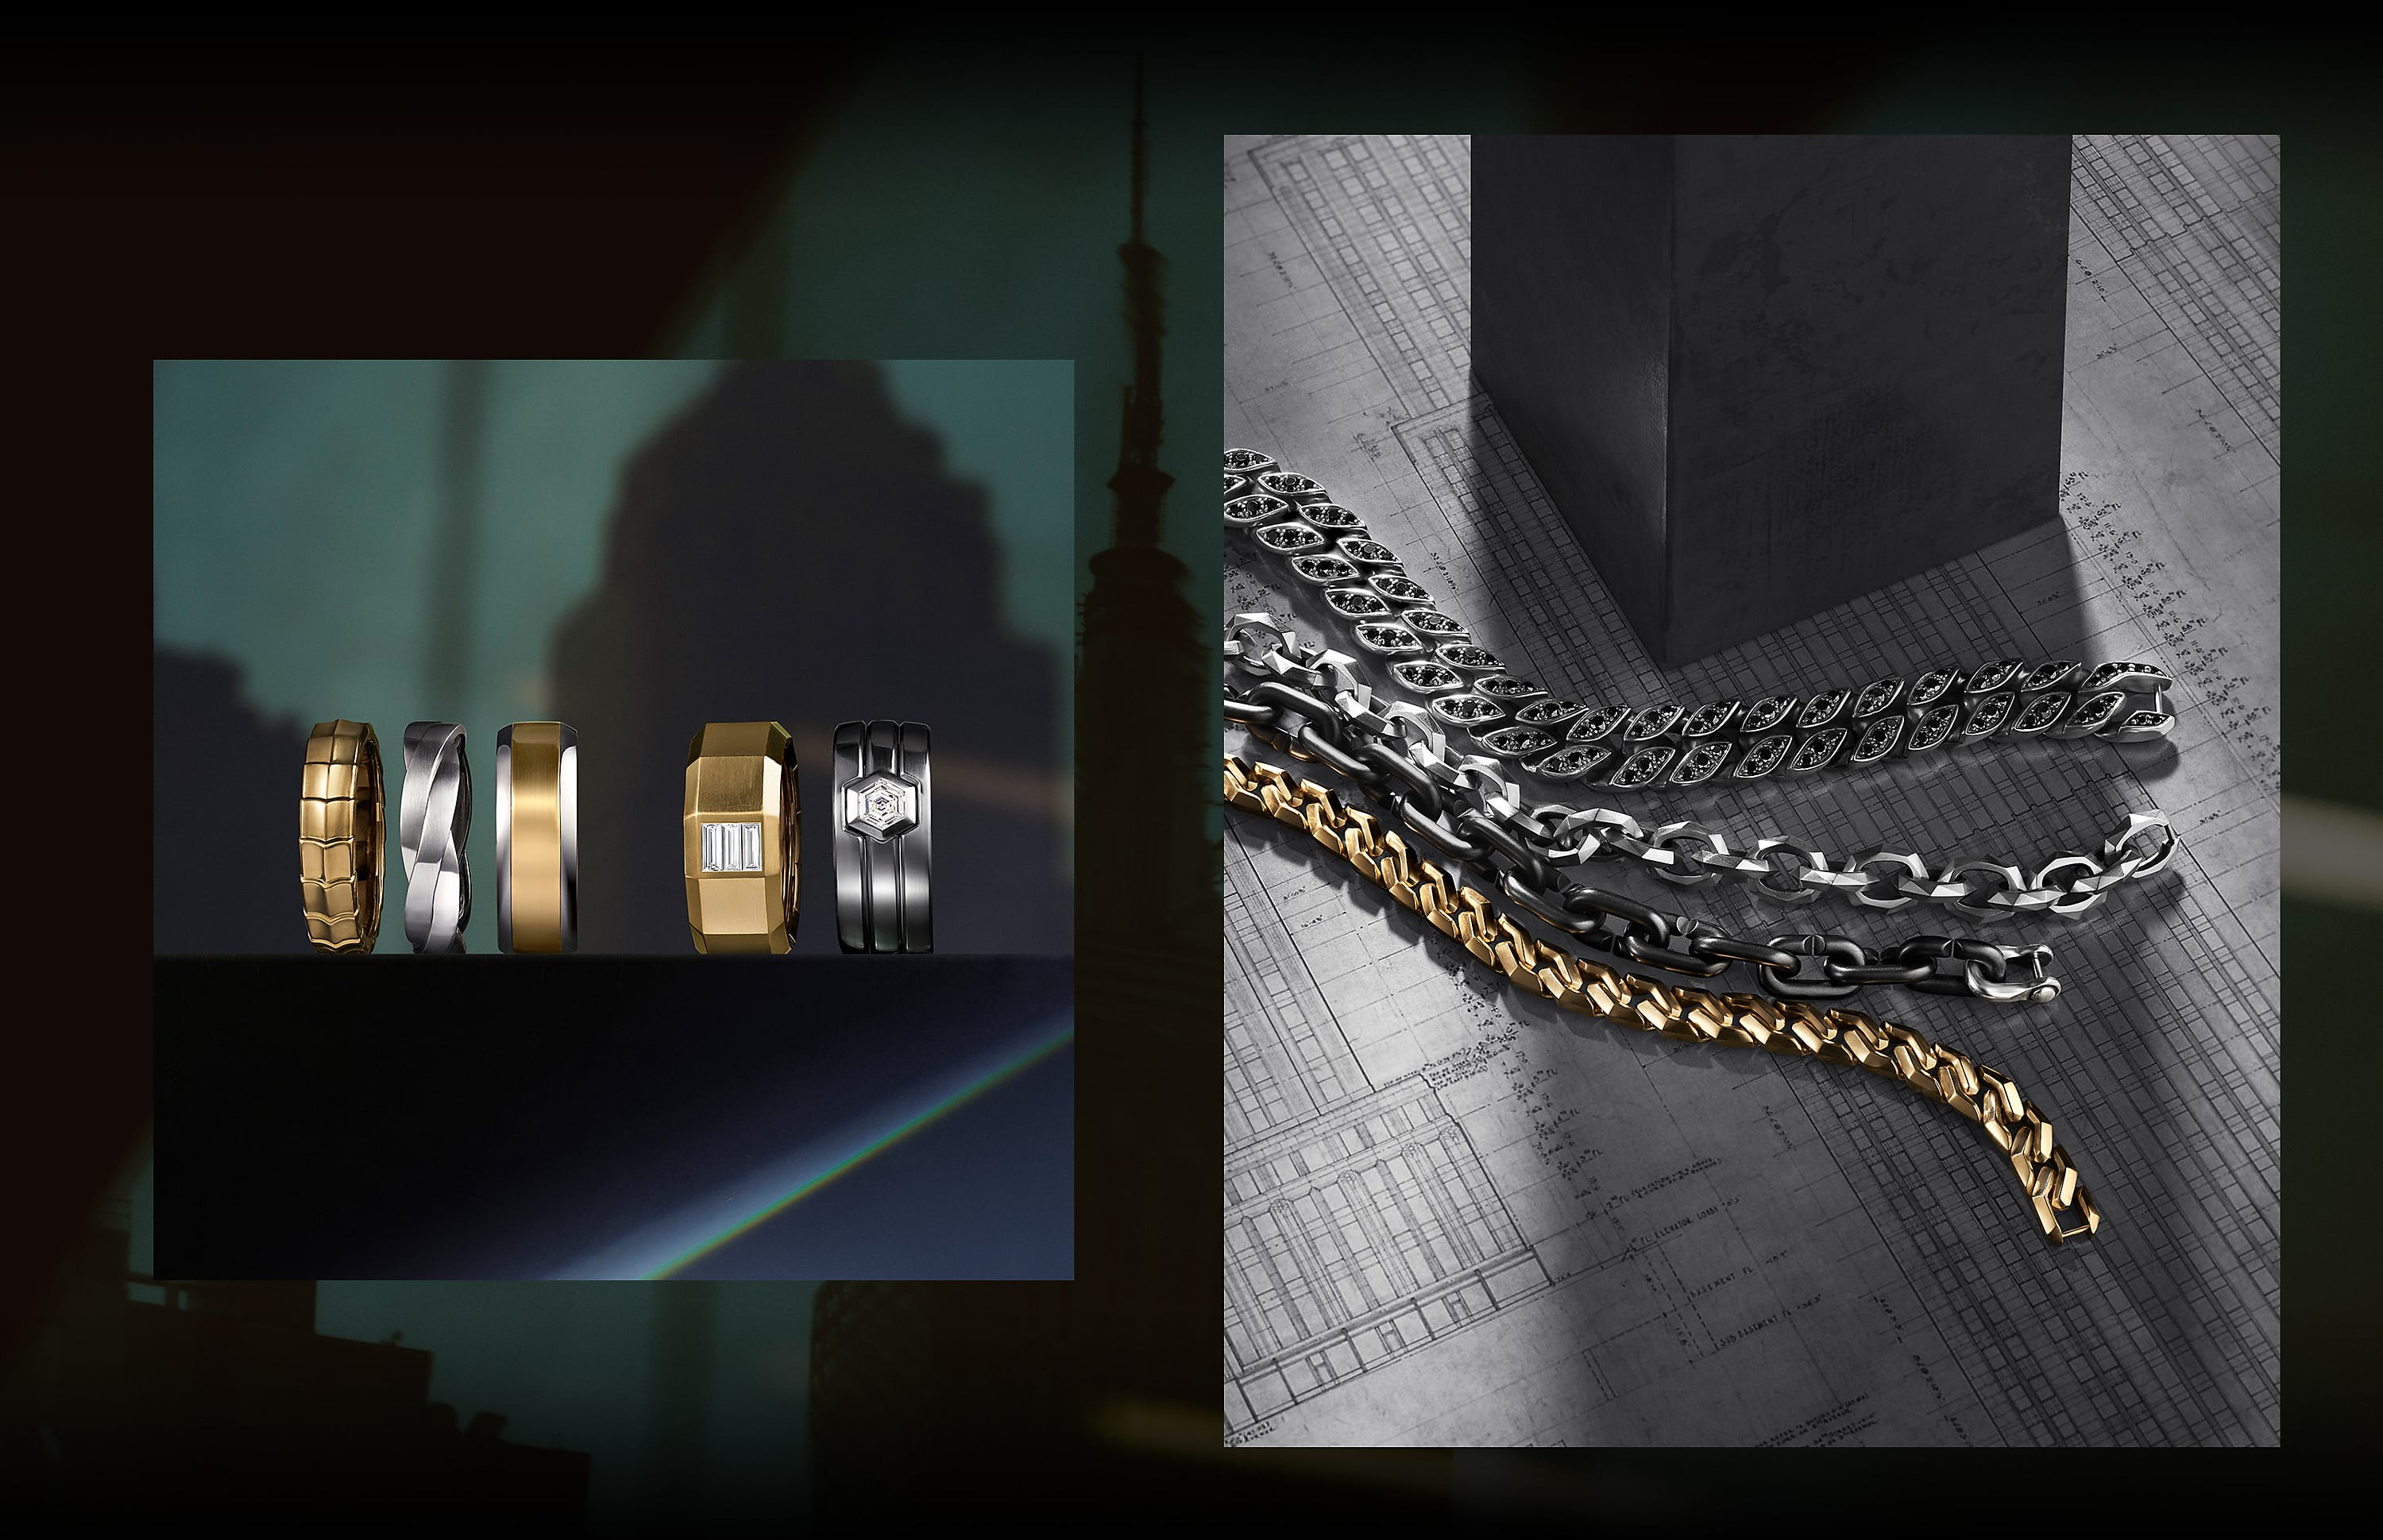 Two color photos of David Yurman men's jewelry are placed next to each other in a row against a black background. On the left is an image of a horizontal row of five bands standing on a dark reflective surface with a projection of a city building in the background. The bands are crafted from 18K yellow gold, sterling silver, mixed metals, or 18K yellow gold or platinum with center white diamonds. On the right is an image of four chain bracelets lying in a row atop architectural blueprints near a dark grey box. The bracelets are crafted from 18K yellow gold, black titanium or sterling silver with or without black diamonds.